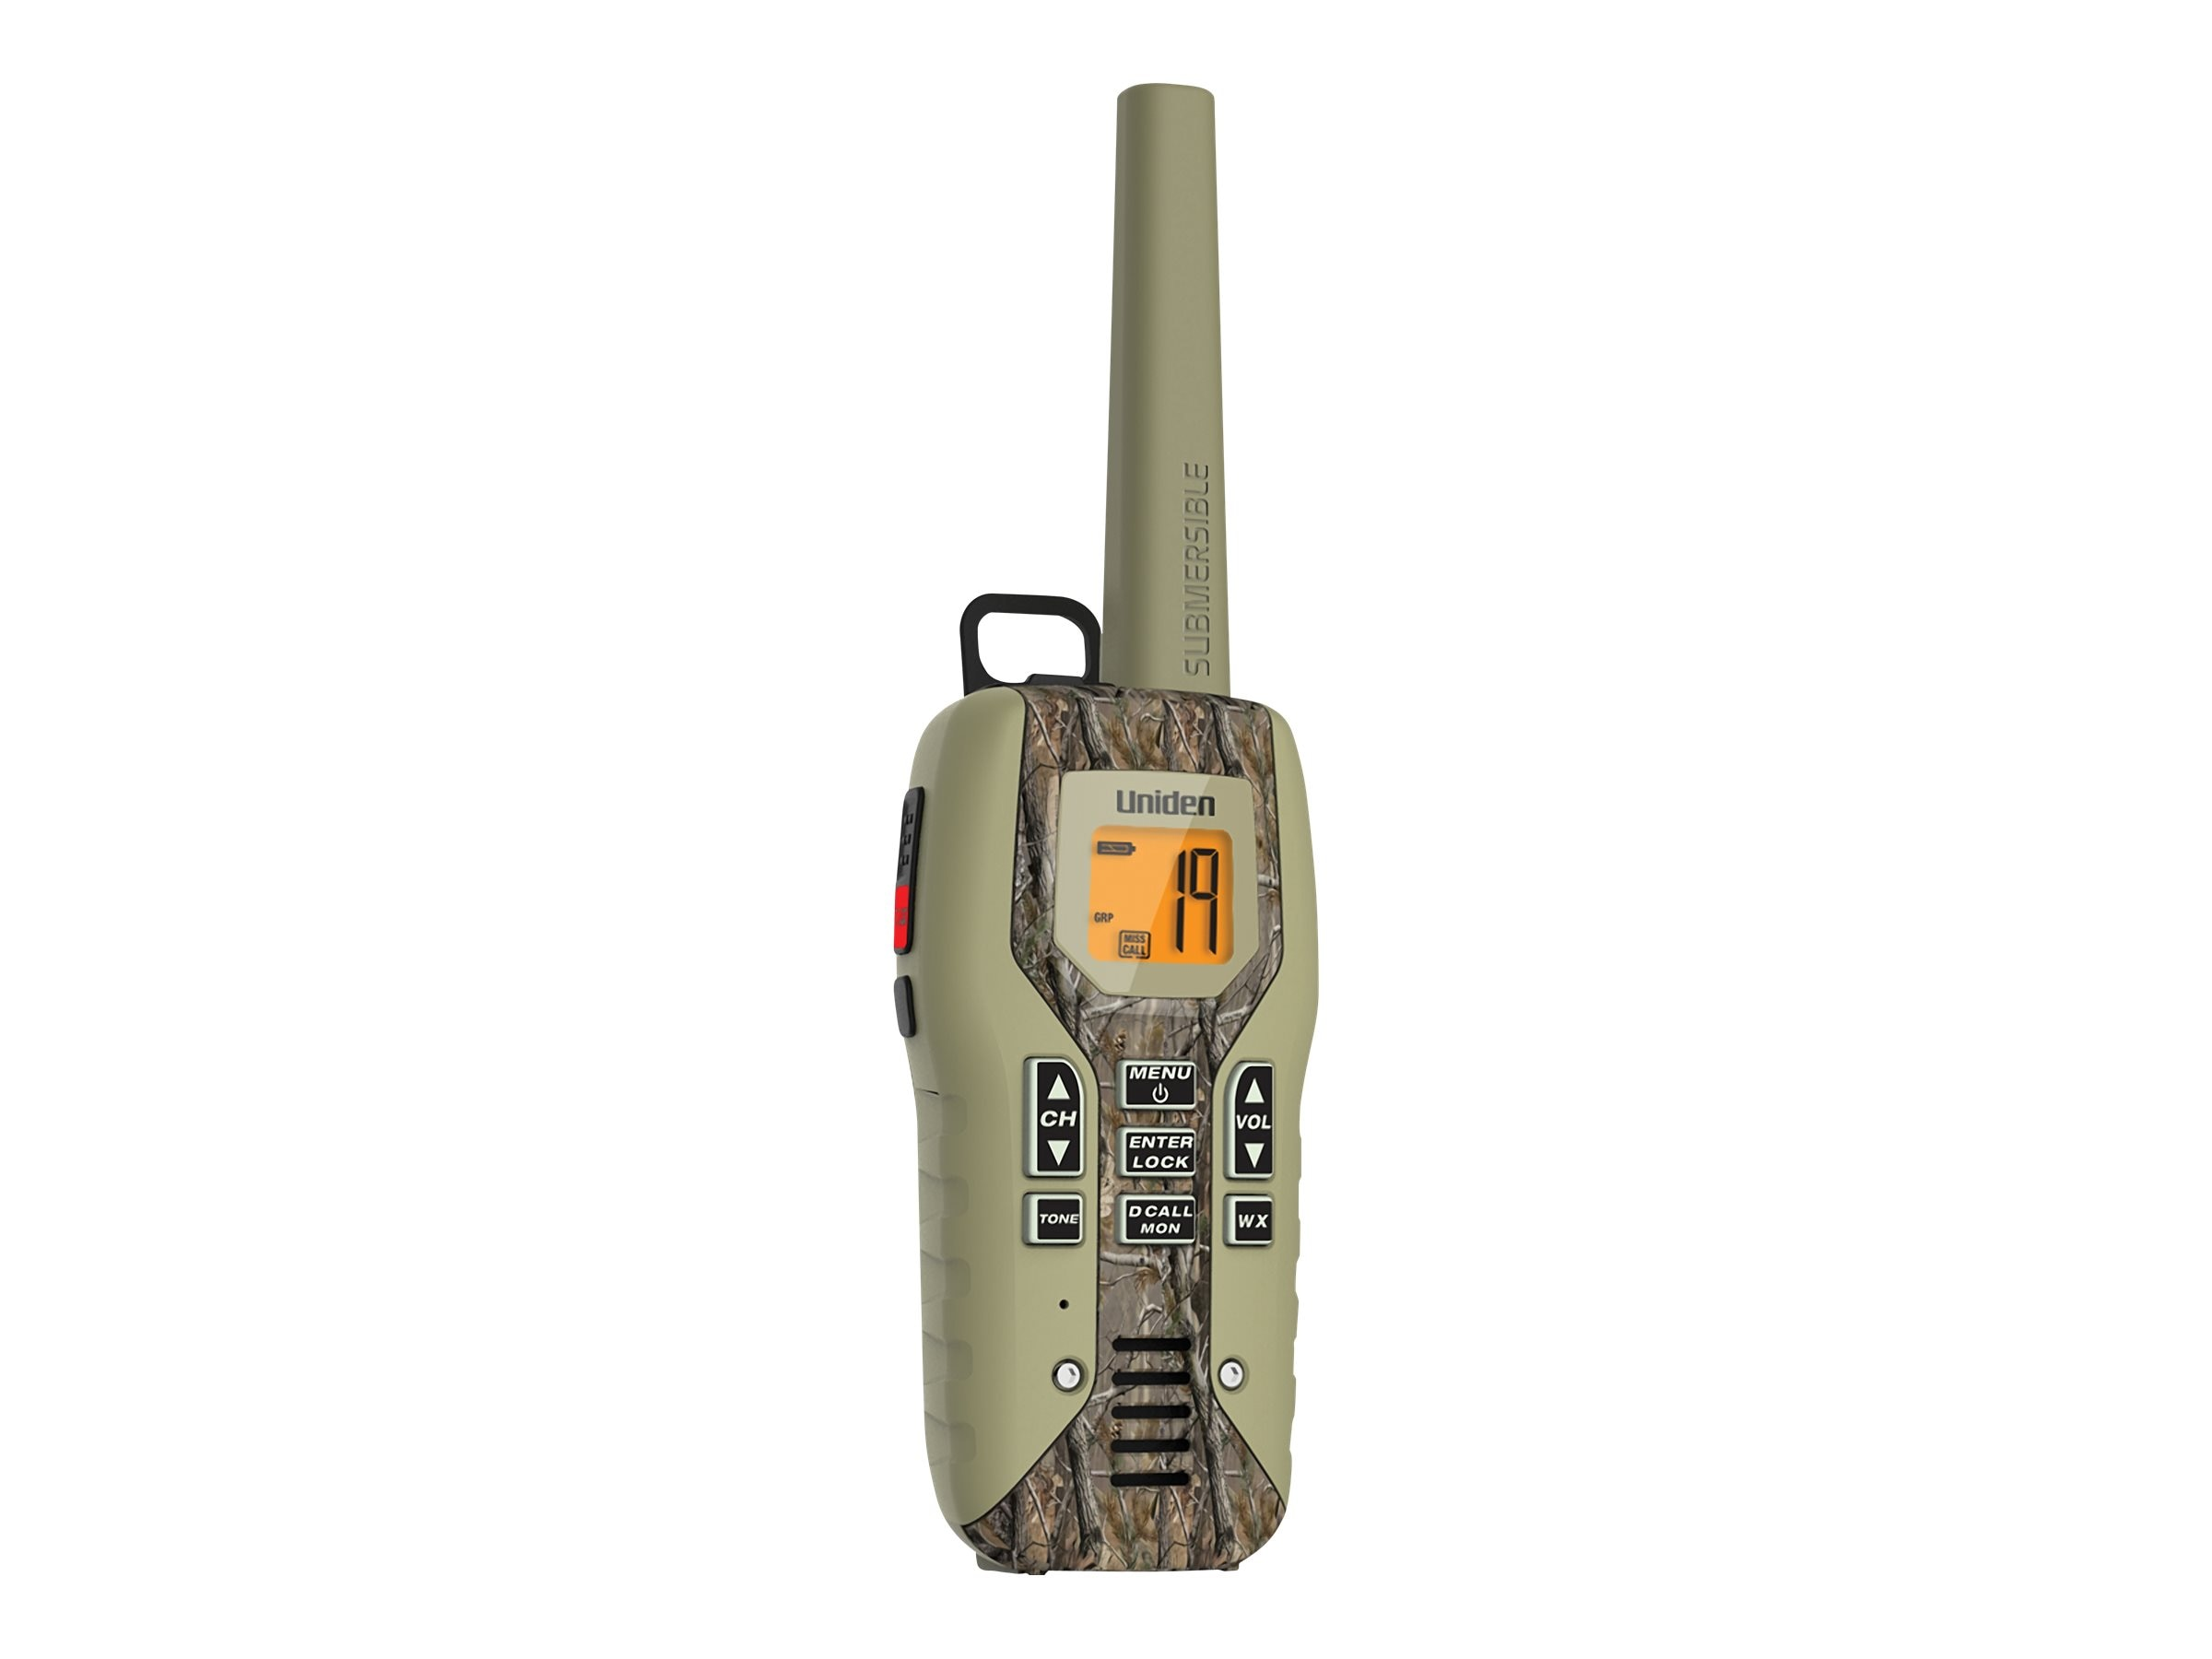 Uniden GMRS FRS 50-Mile Radio w  Privacy Codes, Weather Alerts & Headsets - Camo, GMR5088-2CKHS